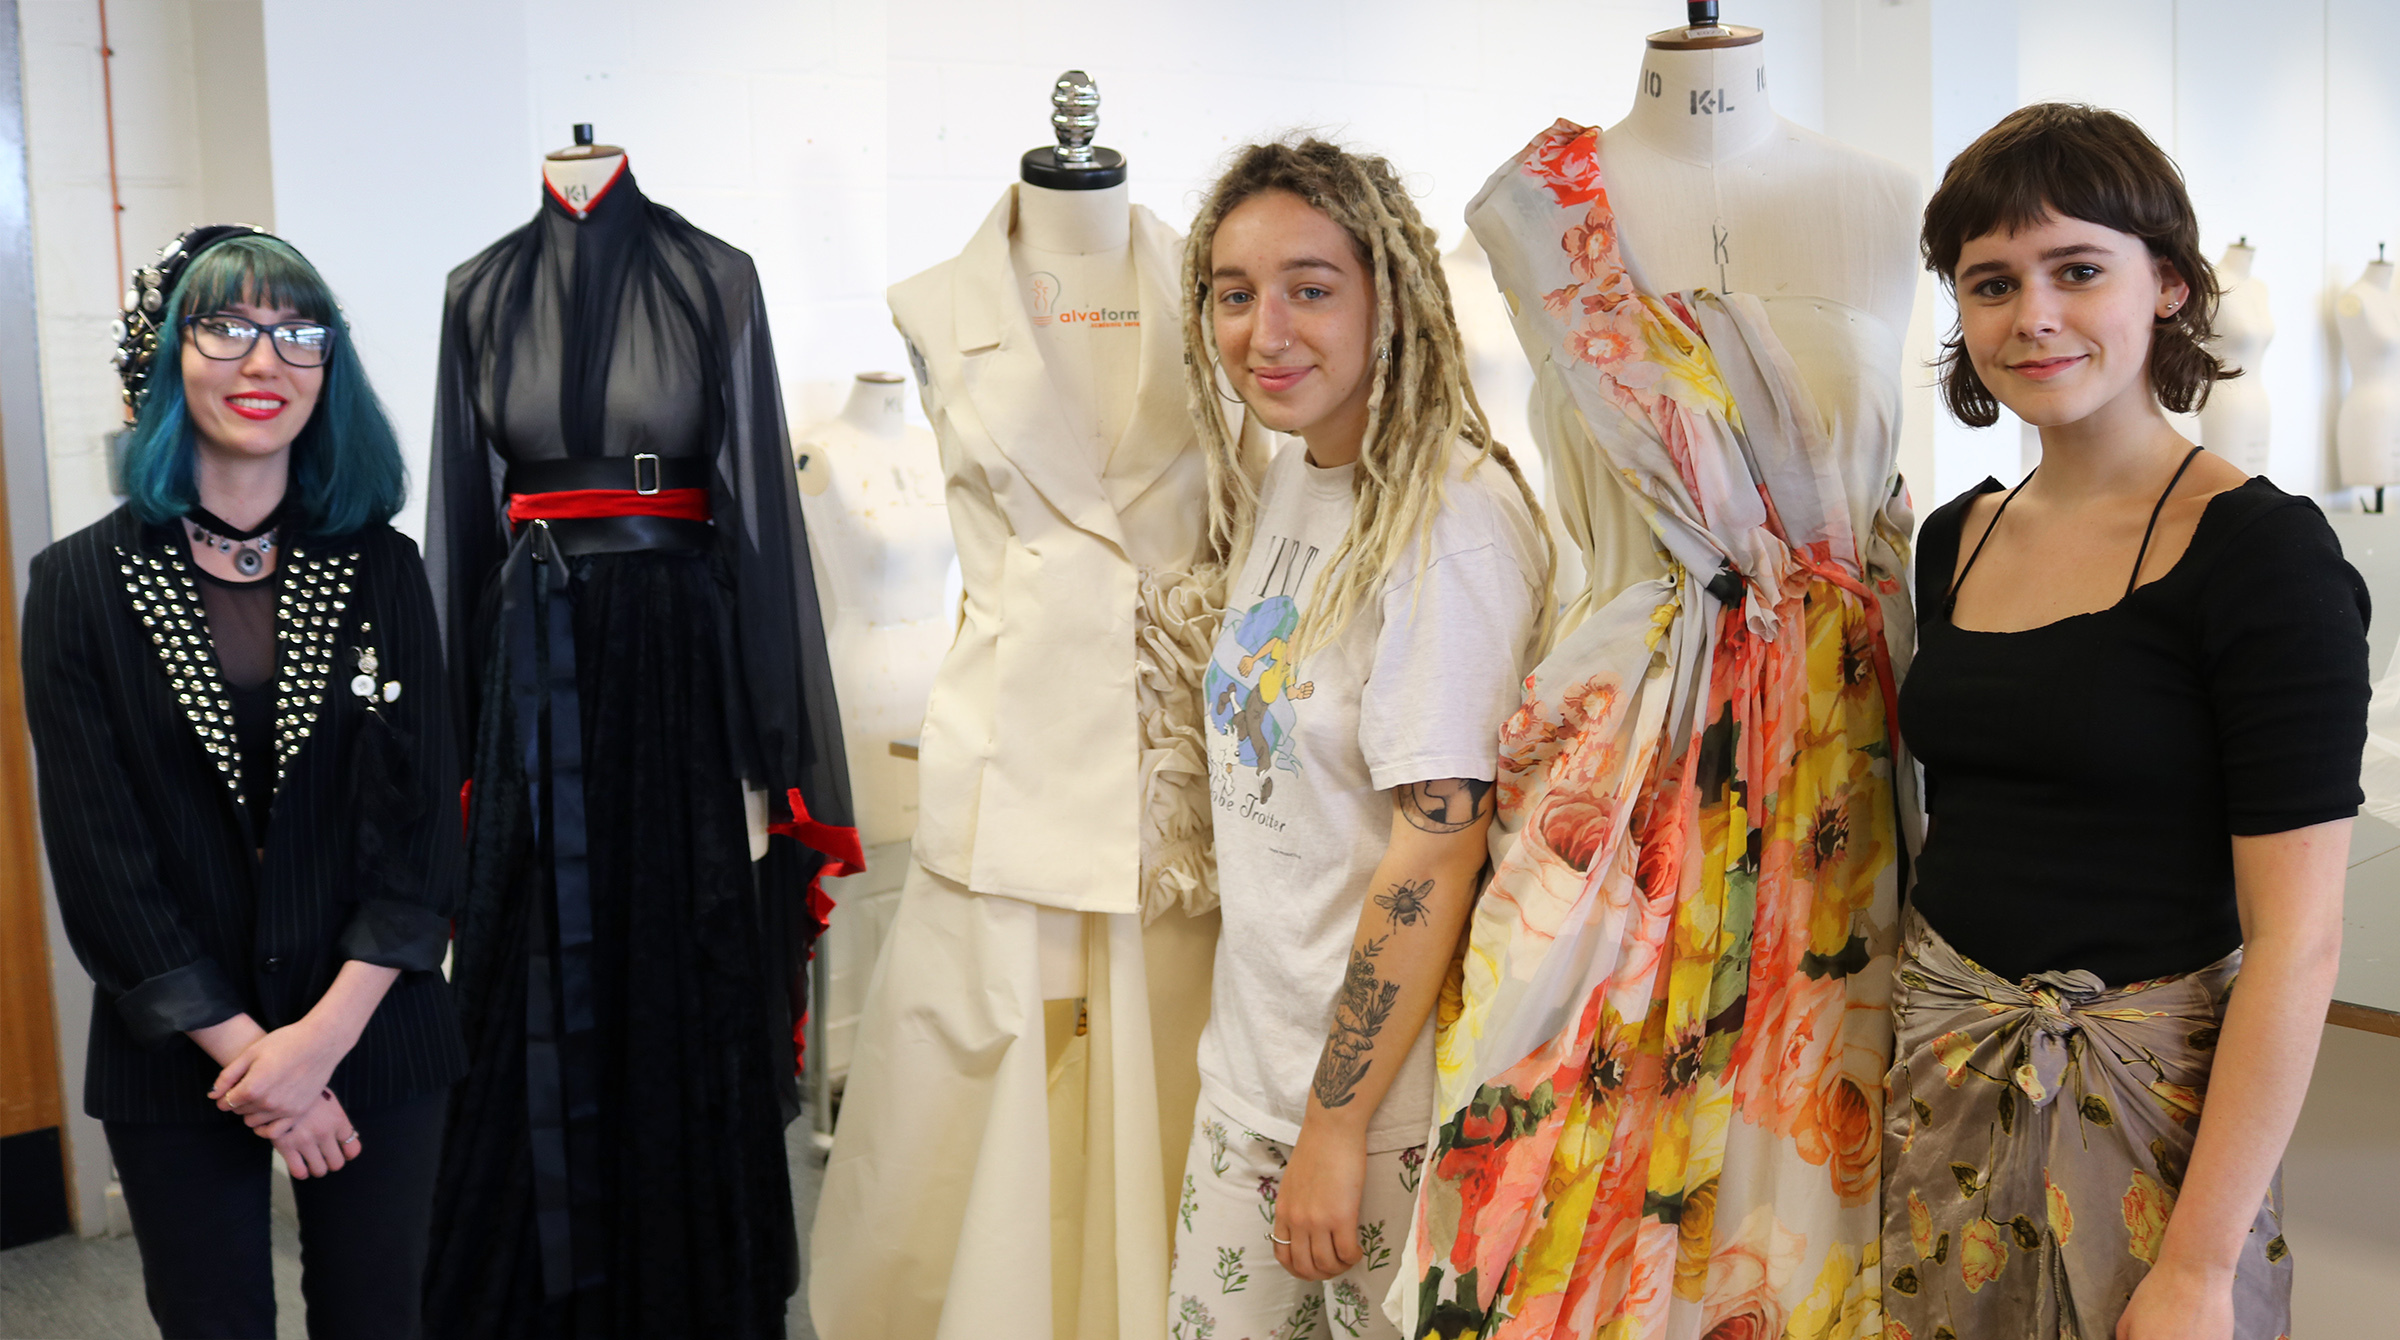 Emily Radforth, Sydney Cassidy and Hannah Creak with their royal wedding dress designs at Kingston University